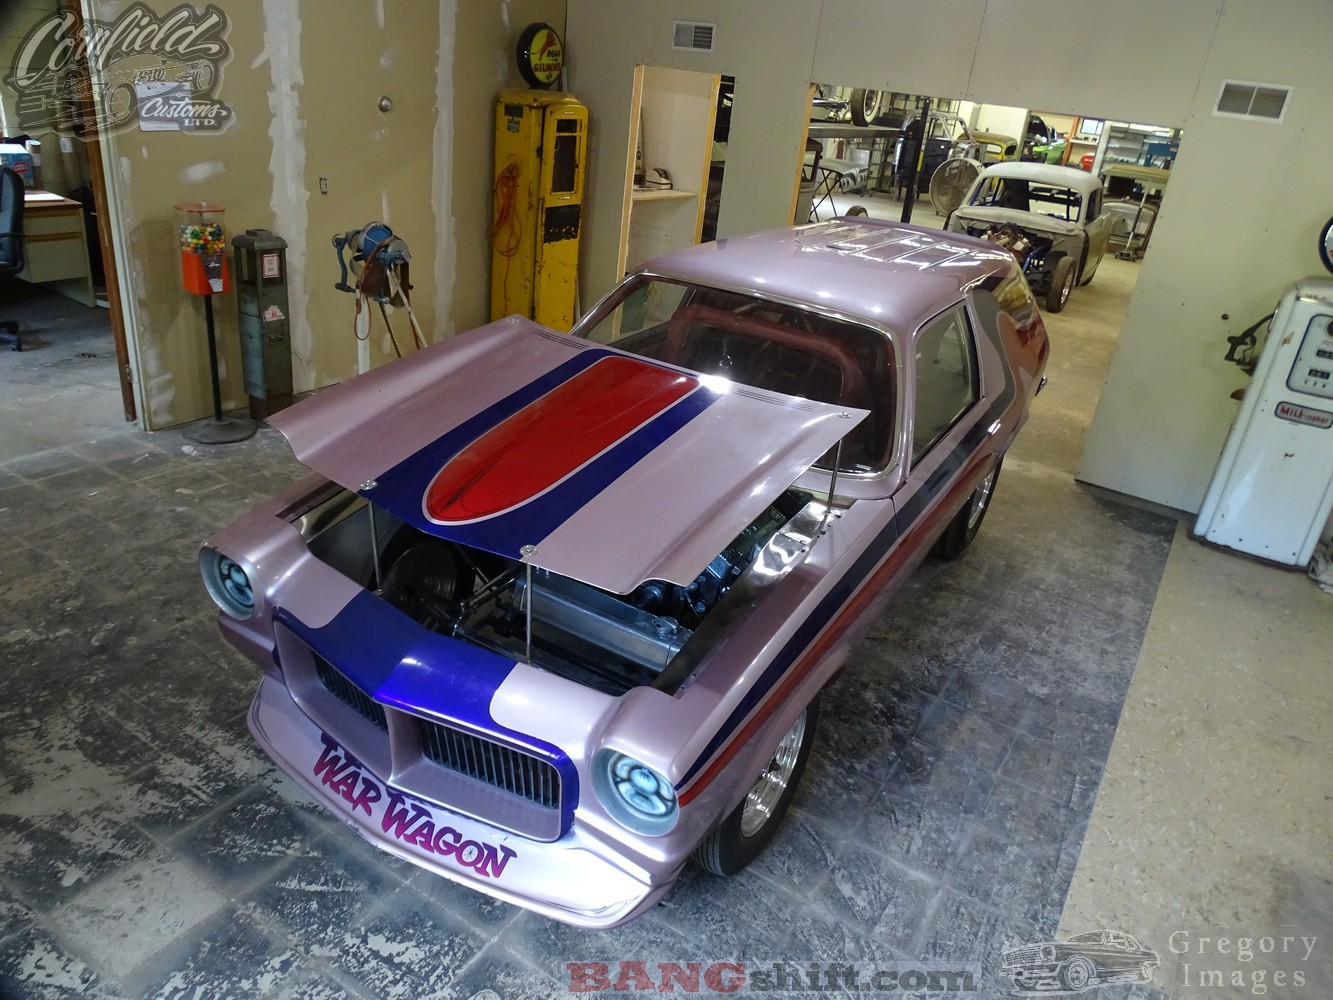 Cornfield Customs: Our Tour Of The Shop Continues – Cool Stuff Everywhere